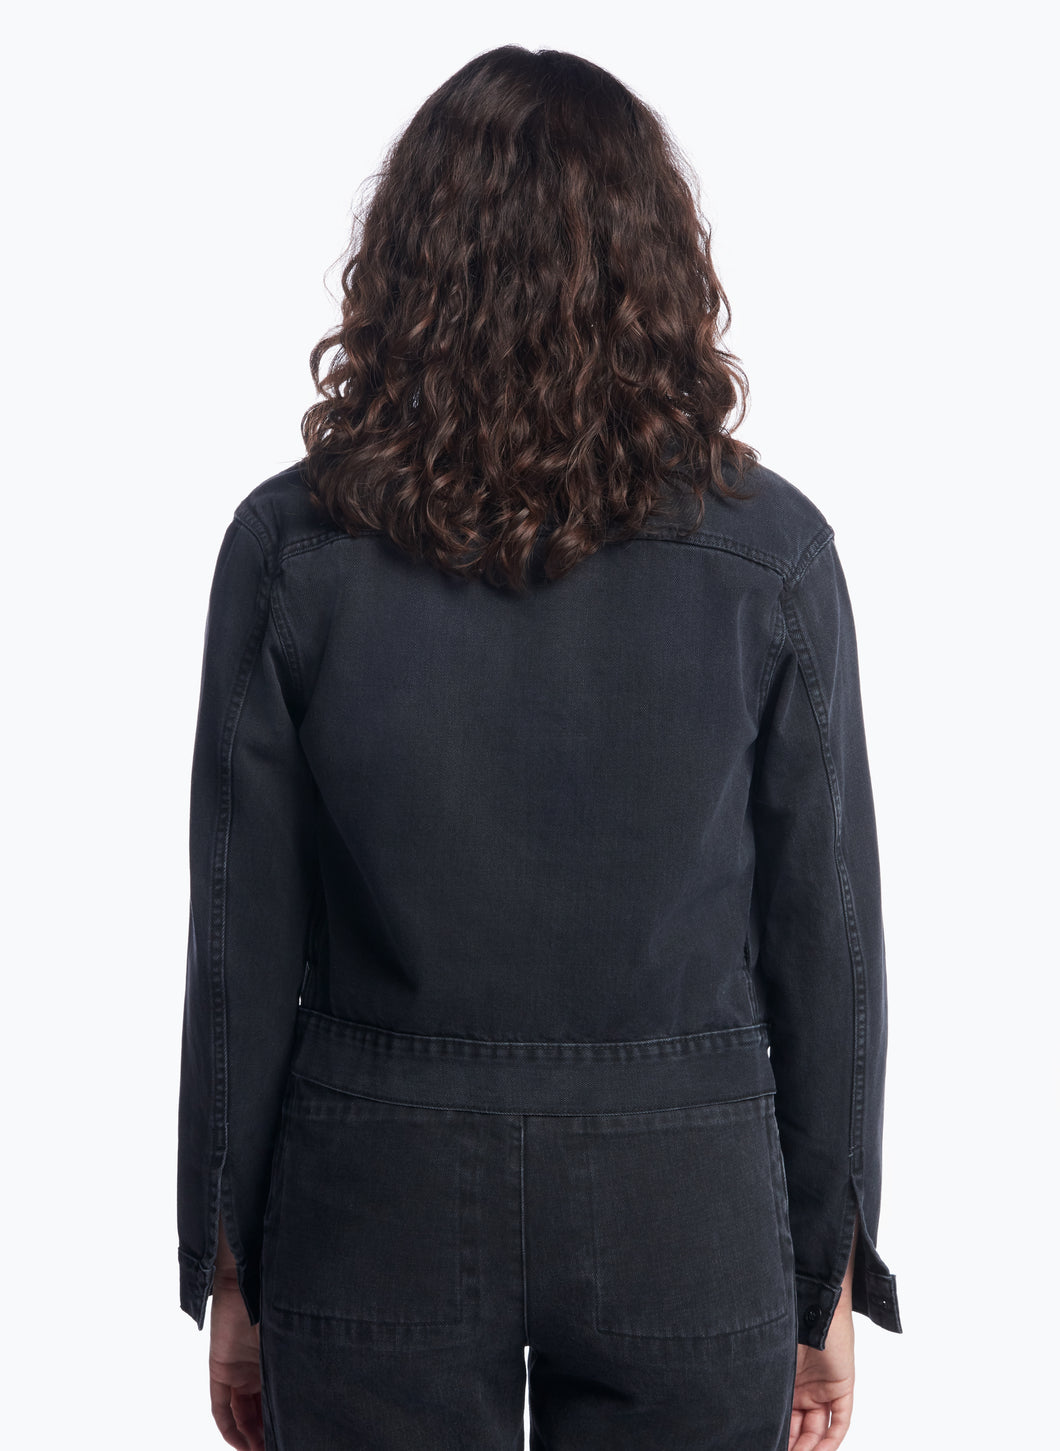 False Collar Jacket in Black Denim